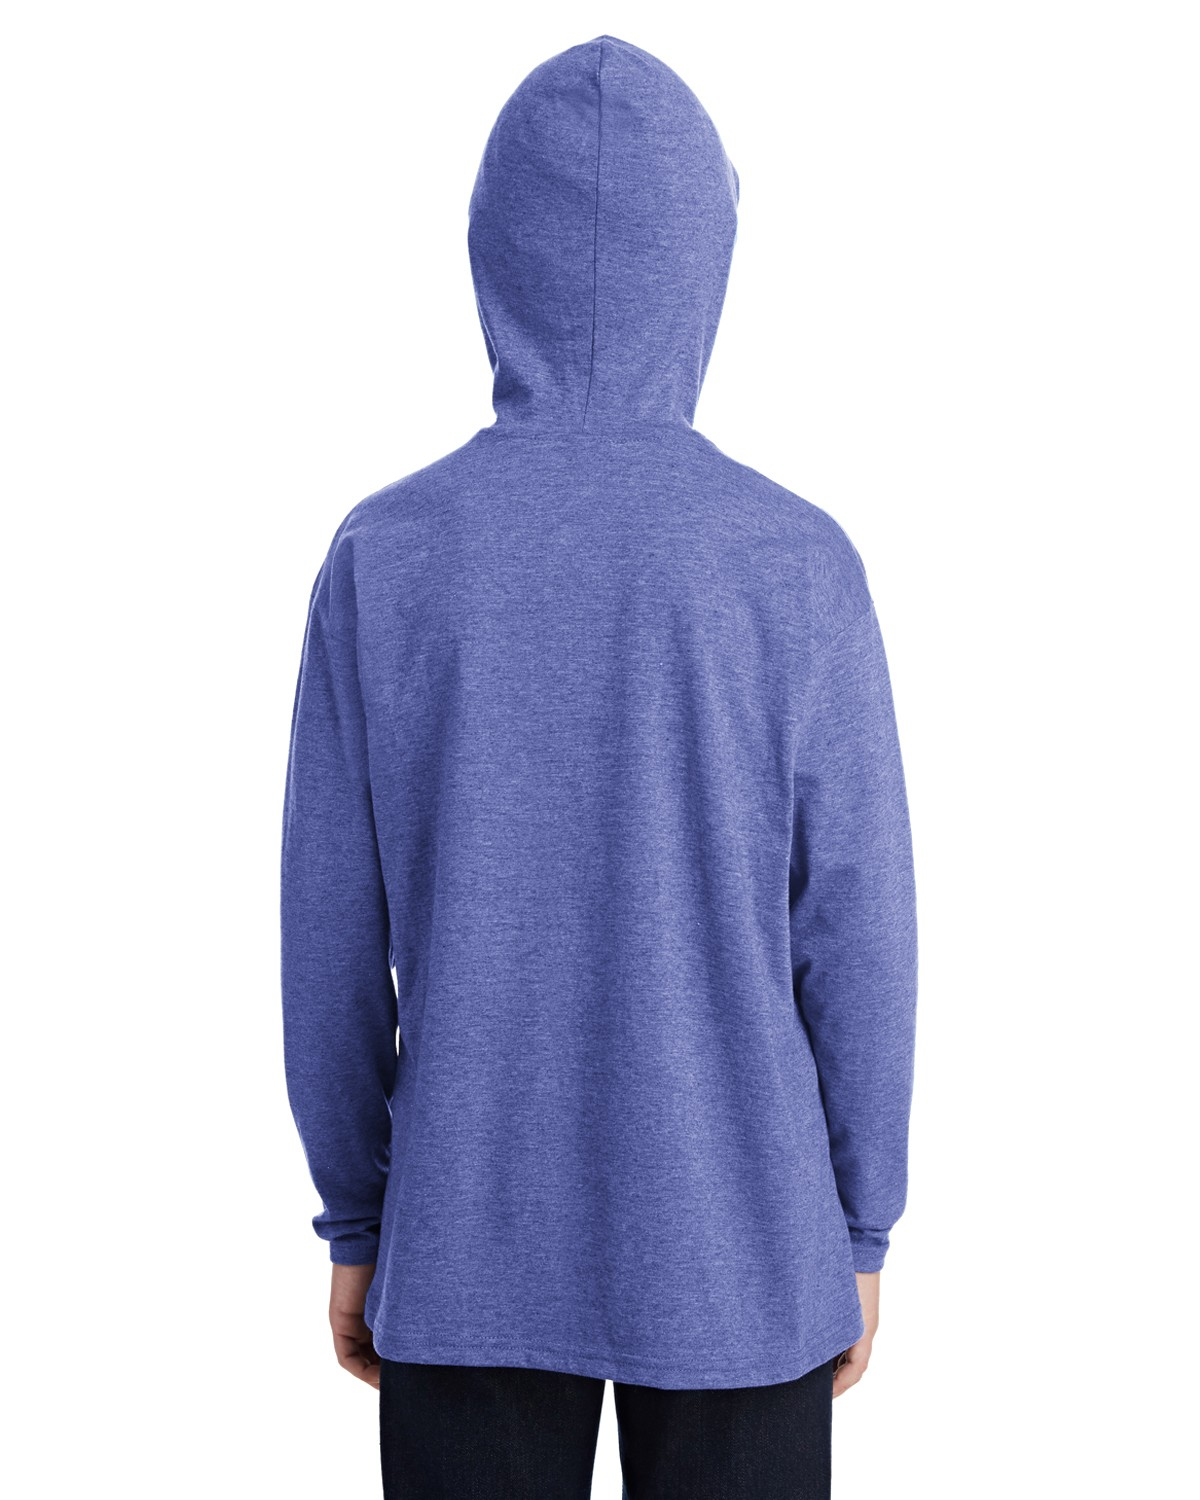 987B Anvil HEATHER BLUE